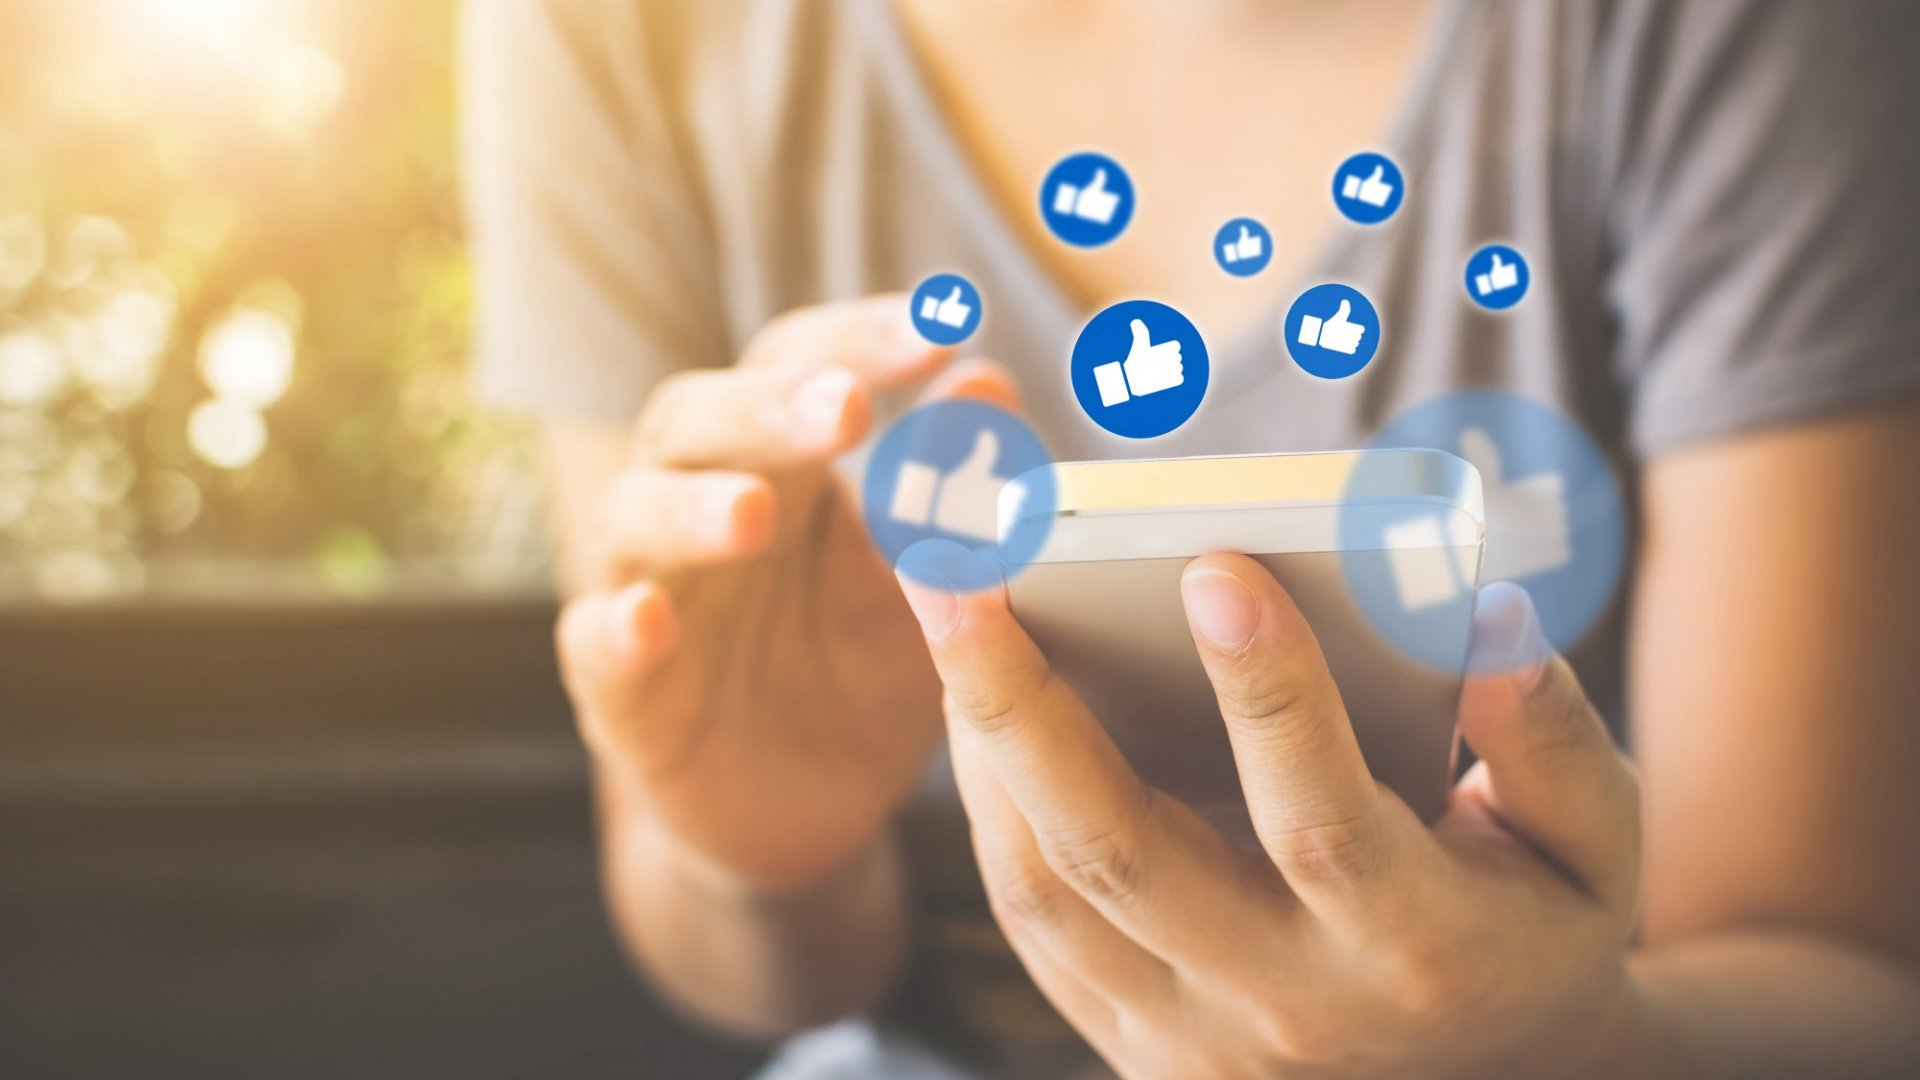 Study Shows New Facebook Reactions Engagement has Increased by 433%